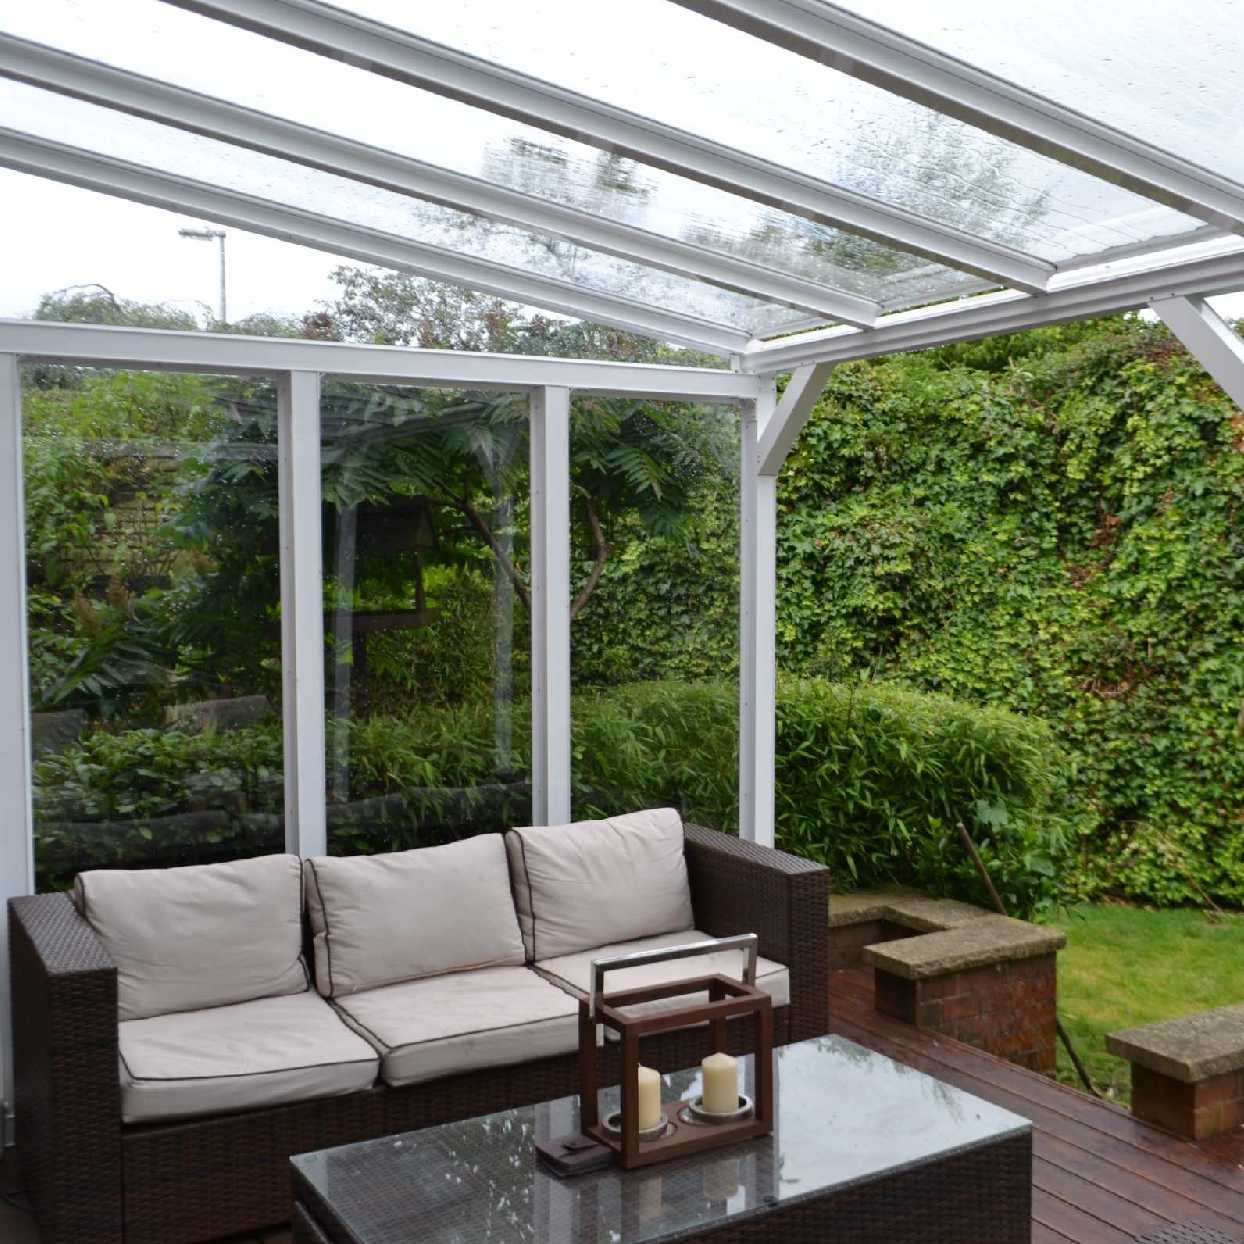 Omega Smart Lean-To Canopy UNGLAZED for 6mm Glazing - 8.4m (W) x 2.5m (P), (4) Supporting Posts